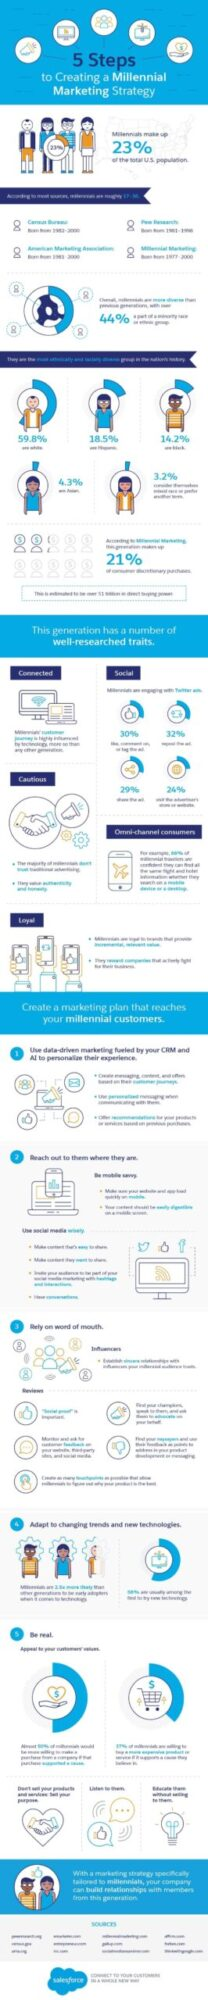 Infographic showing 5 steps to creati9ng a Millenial Marketing Strategy.